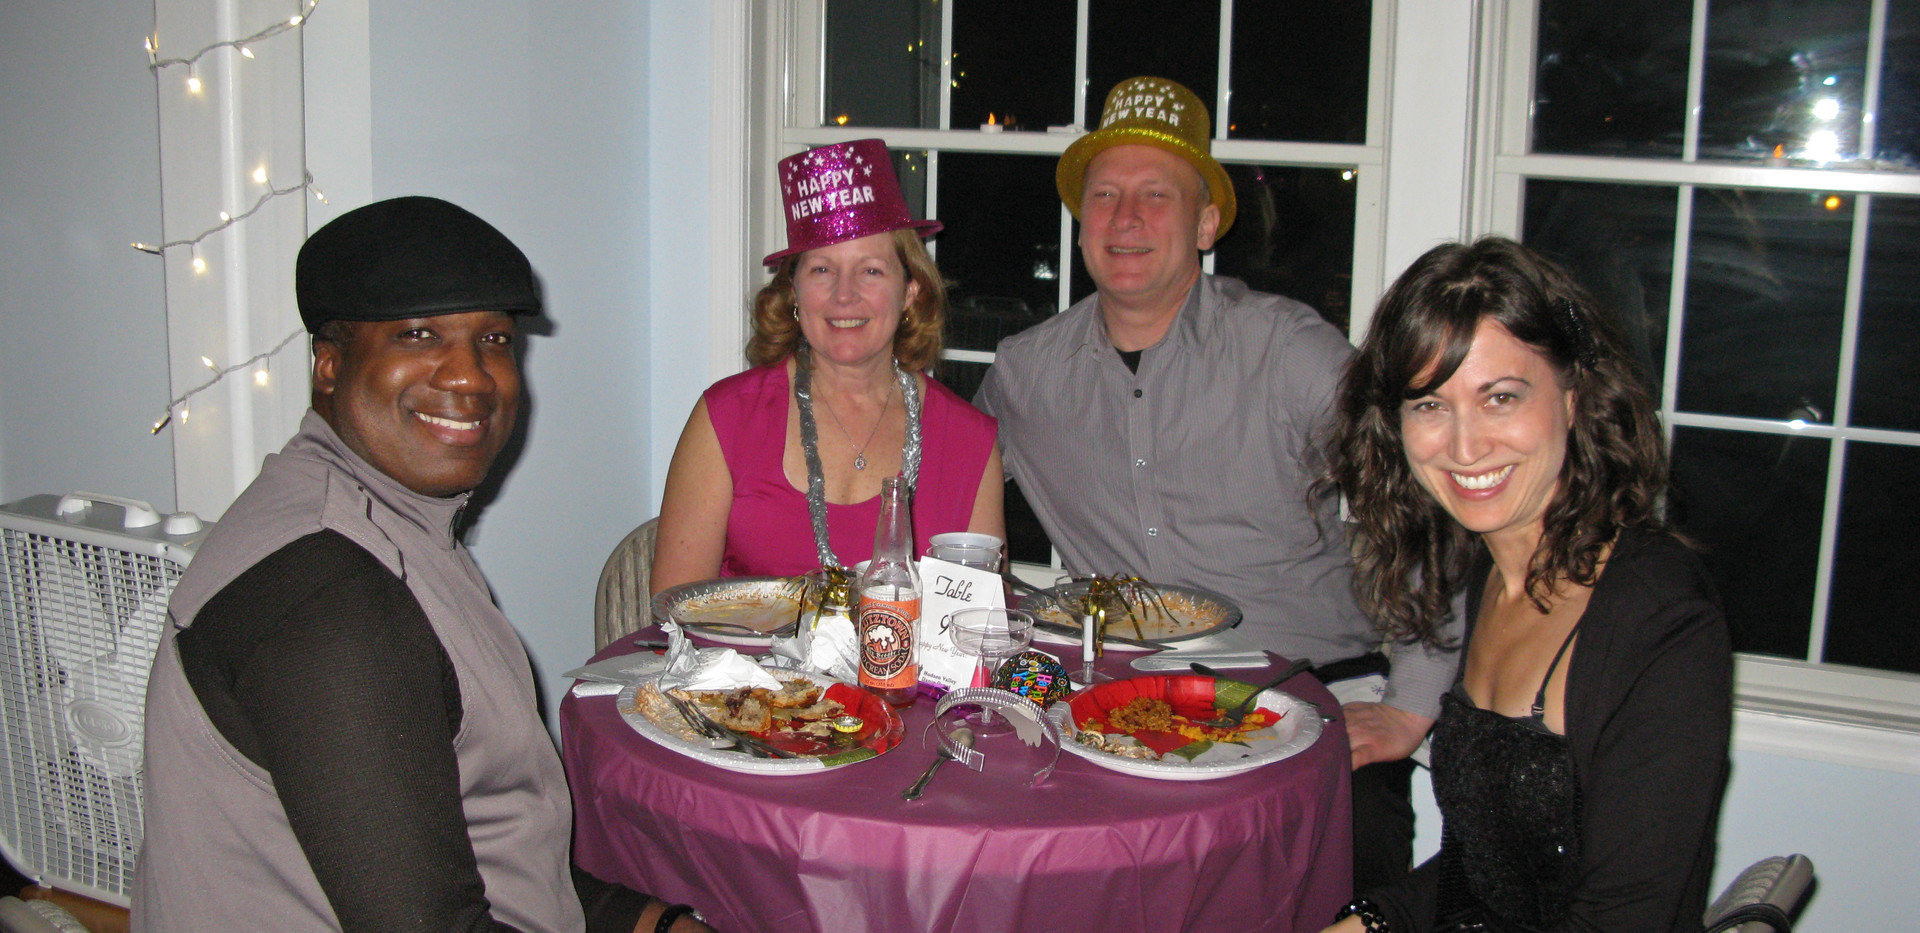 New Year's Eve 2014 - 1